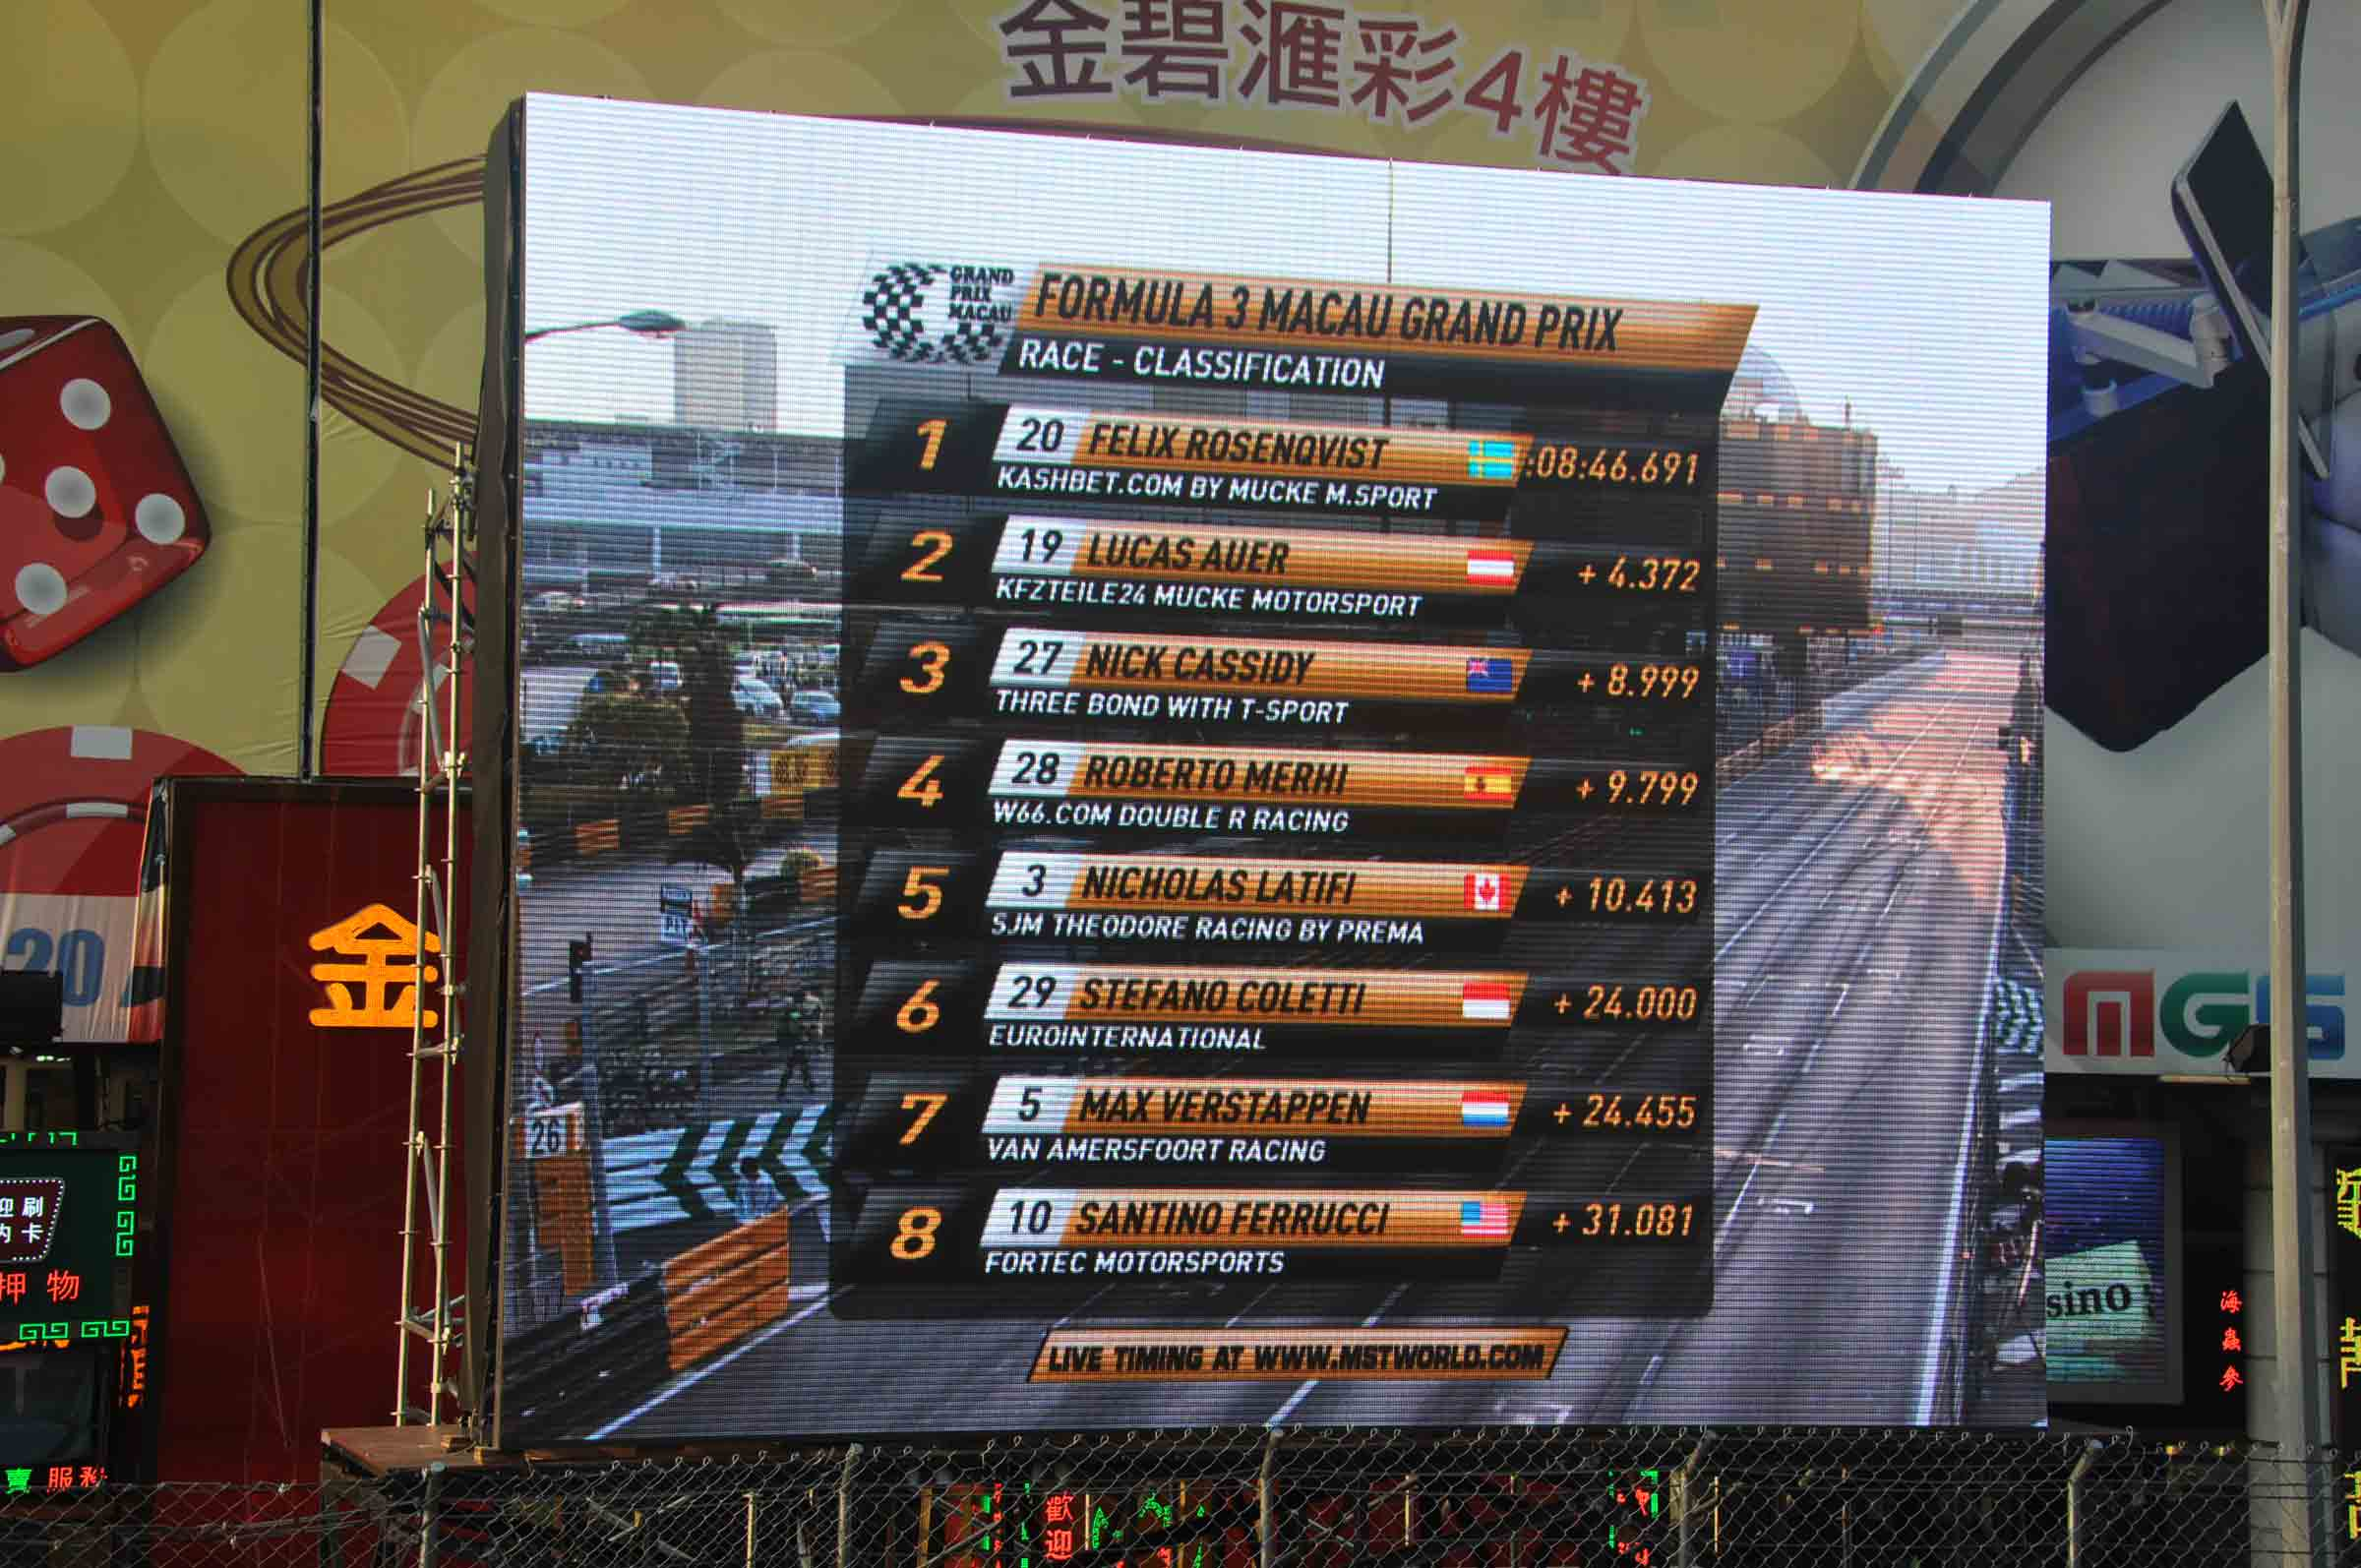 Macau F3 Grand Prix Race winner list